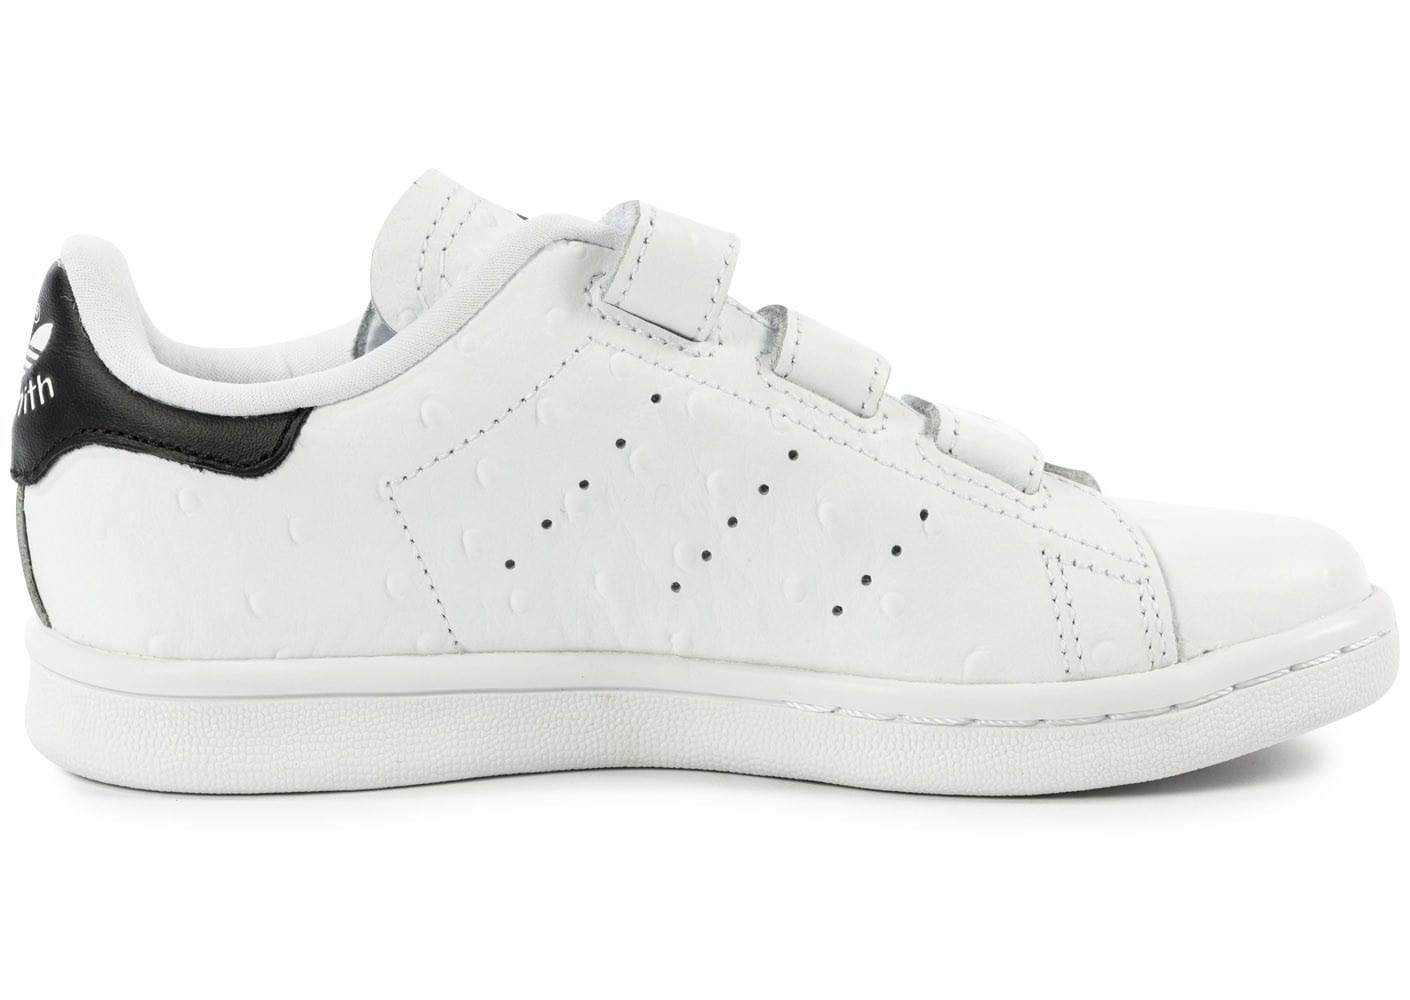 adidas stan smith cf enfant blanche et noire chaussures. Black Bedroom Furniture Sets. Home Design Ideas